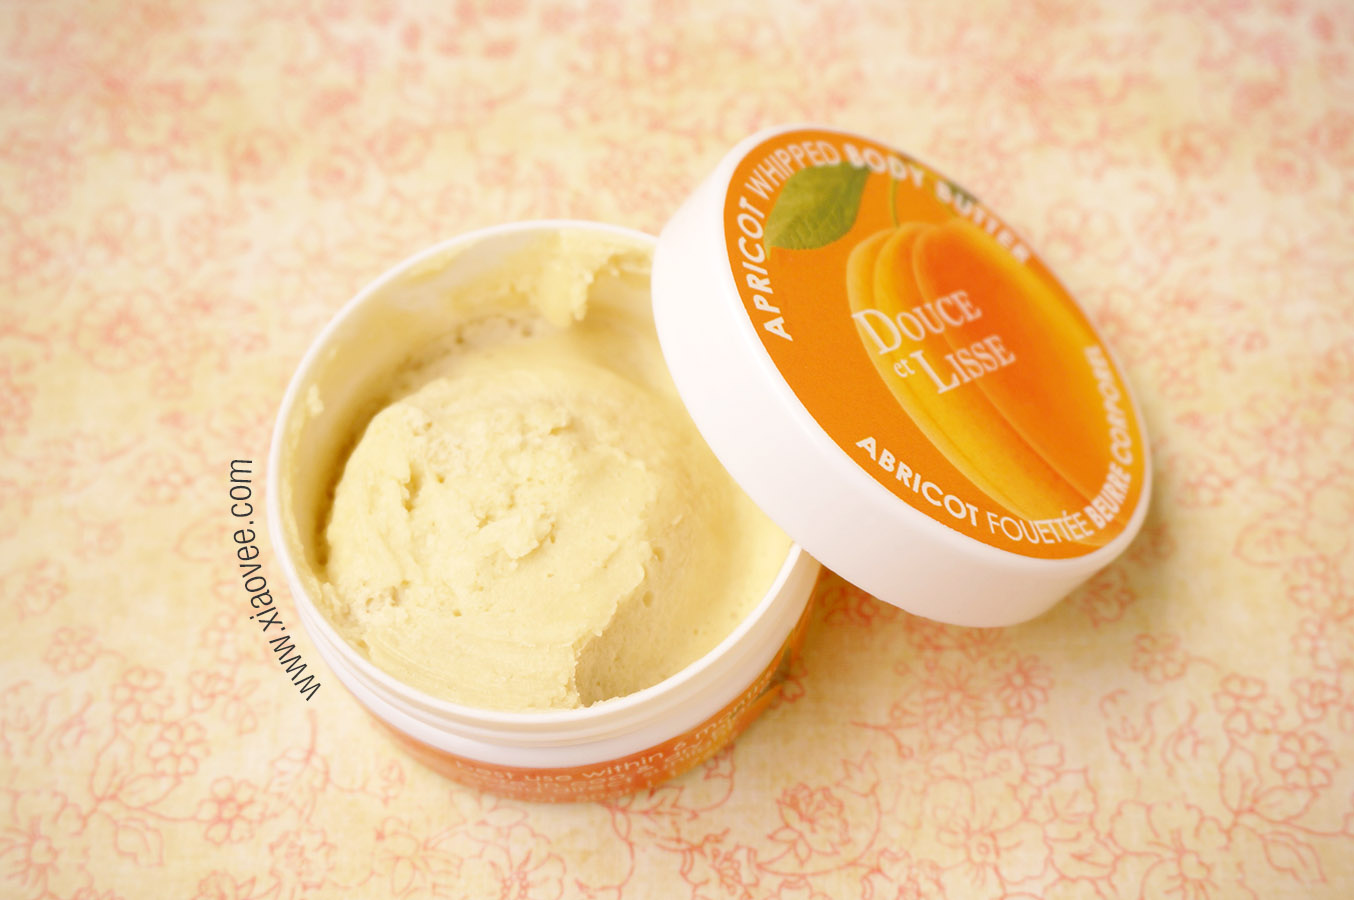 Douce et Lisse, whipped body butter in apricot